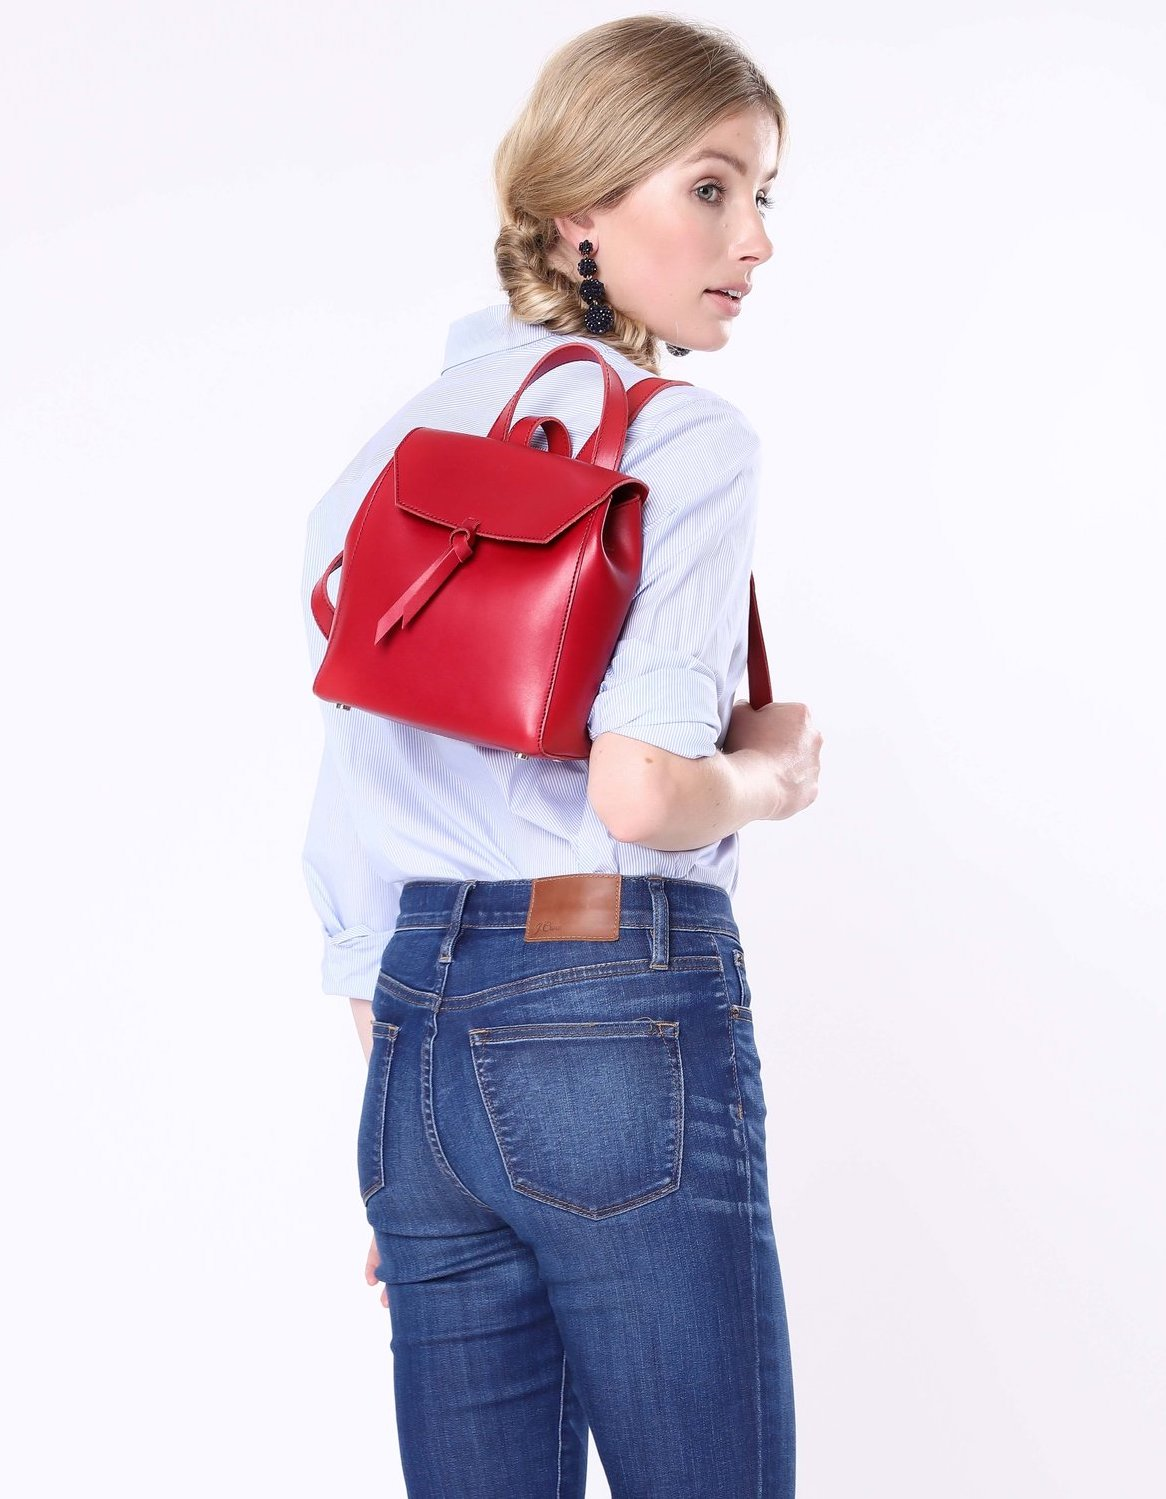 Alexandra+de+Curtis_Mini+Backpack+Red+square.jpg